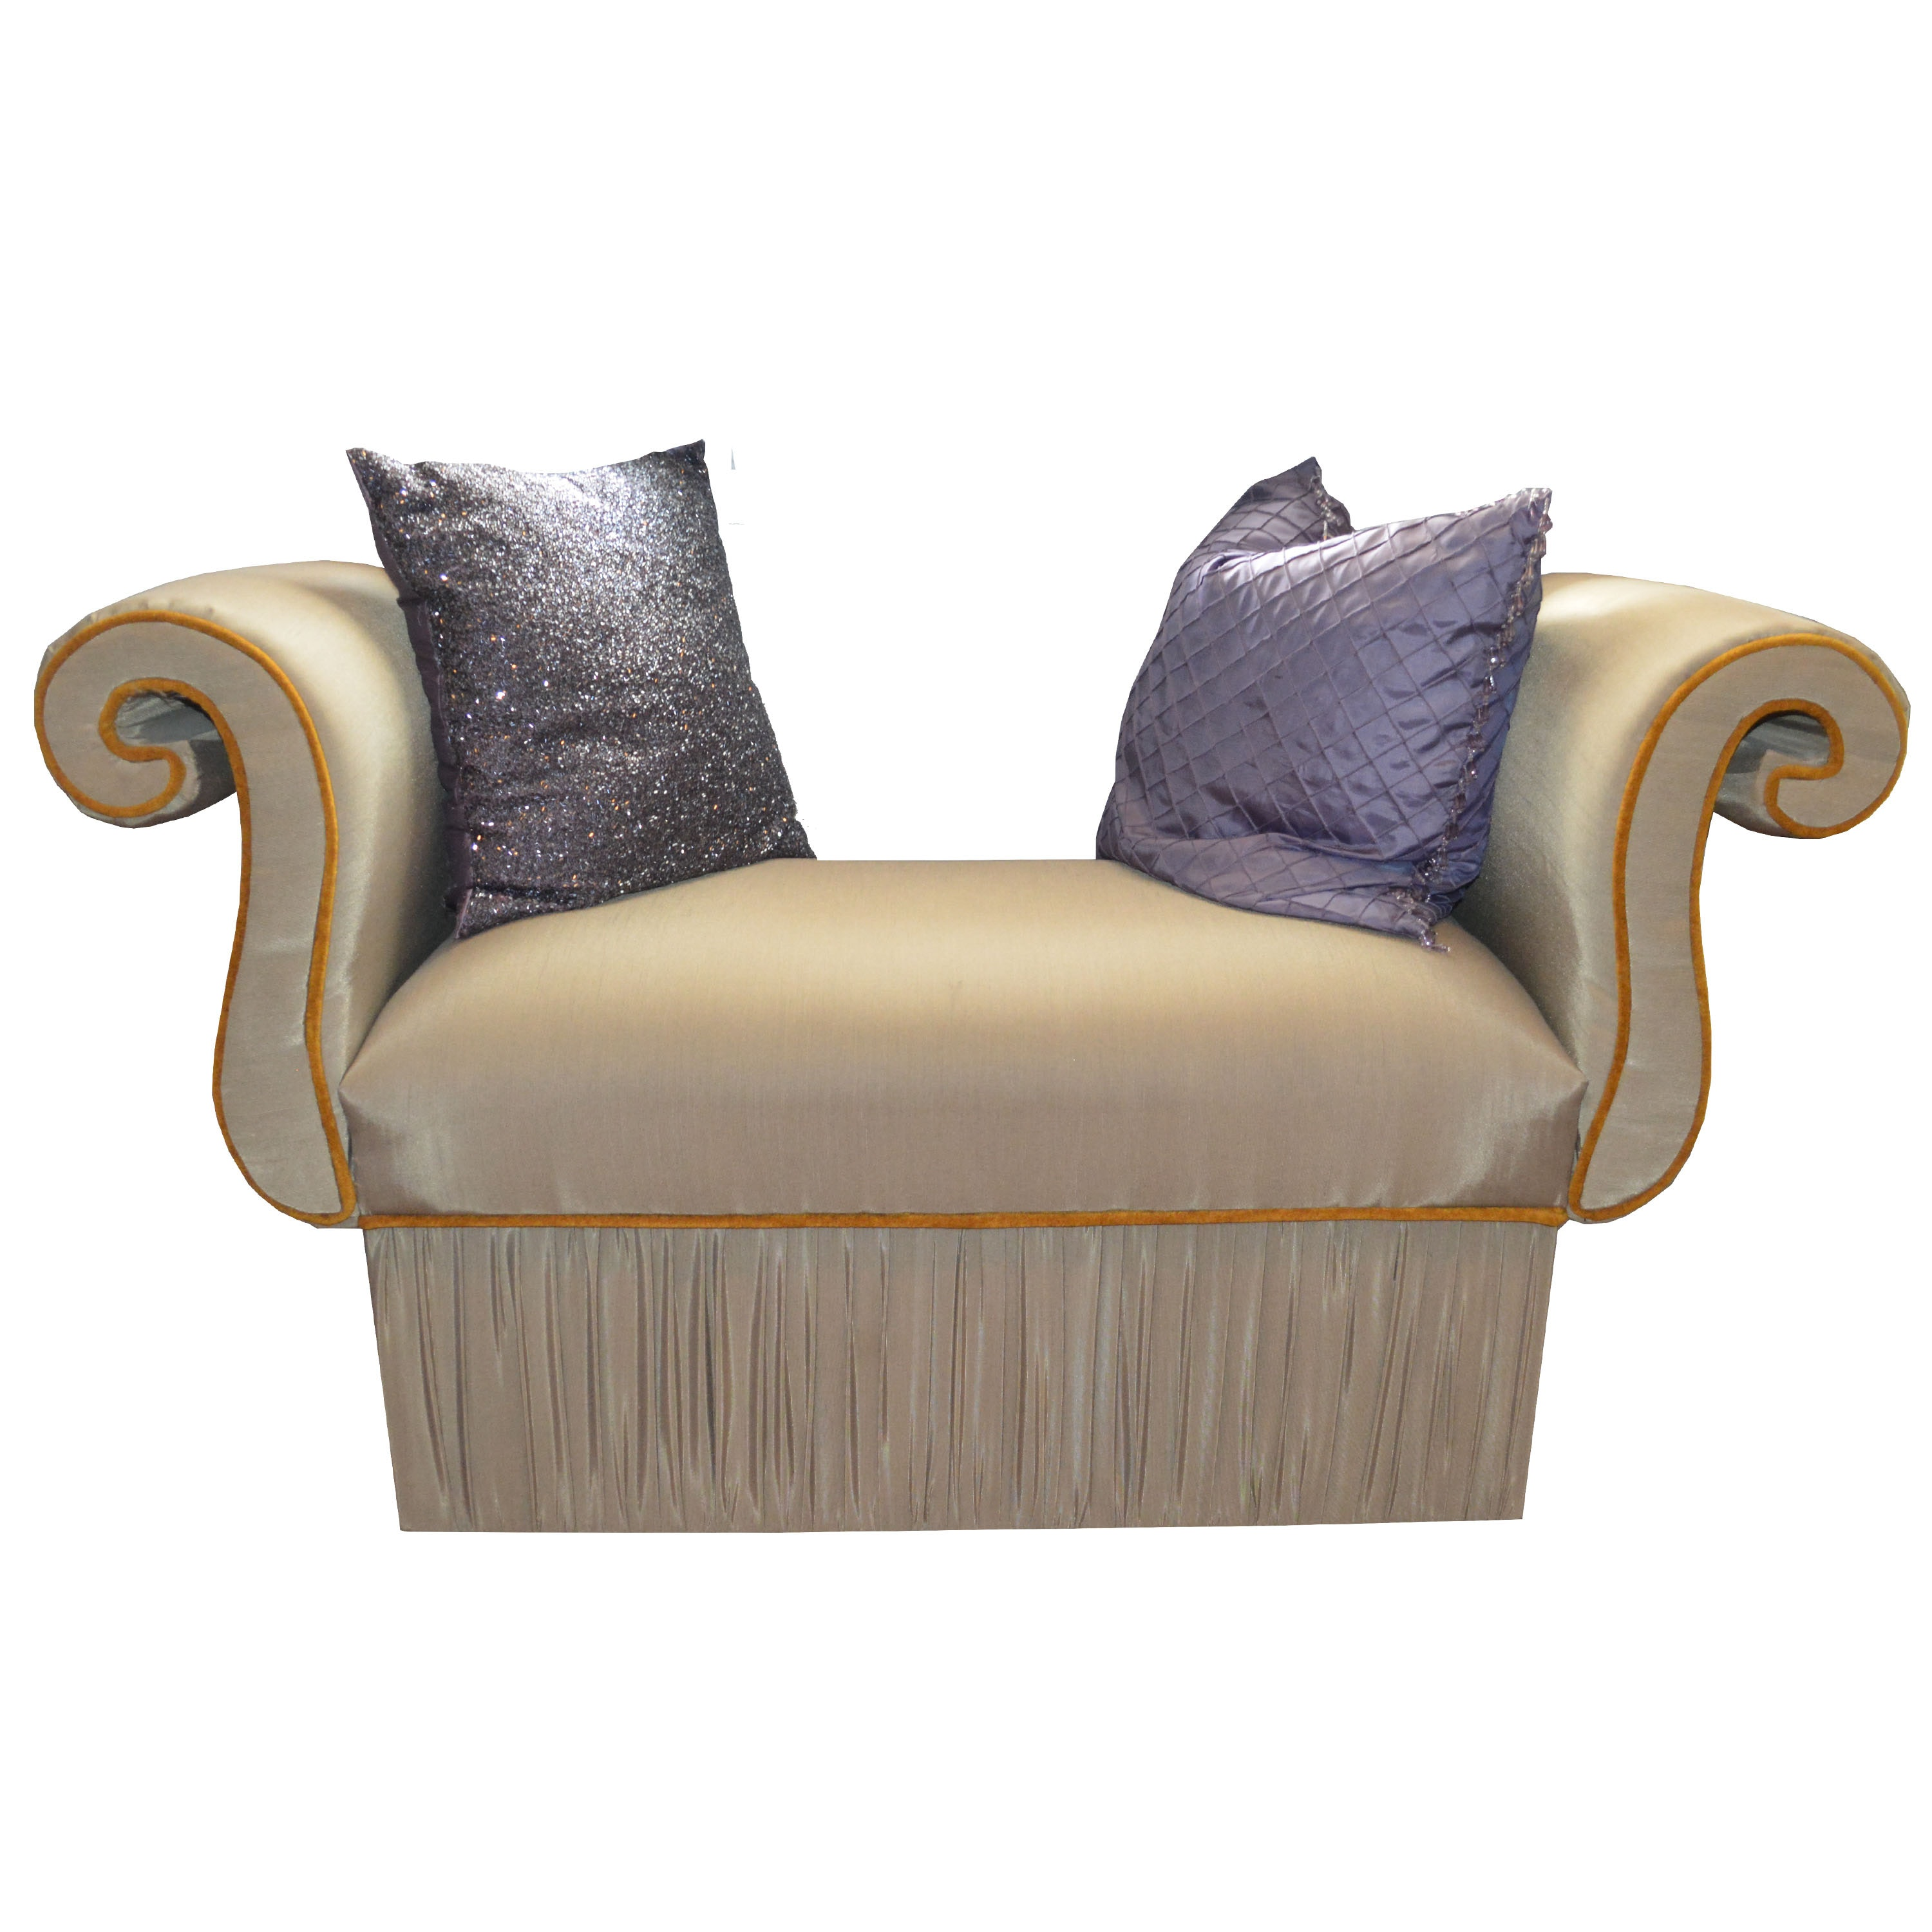 Hollywood Regency Style Settee with Pillows